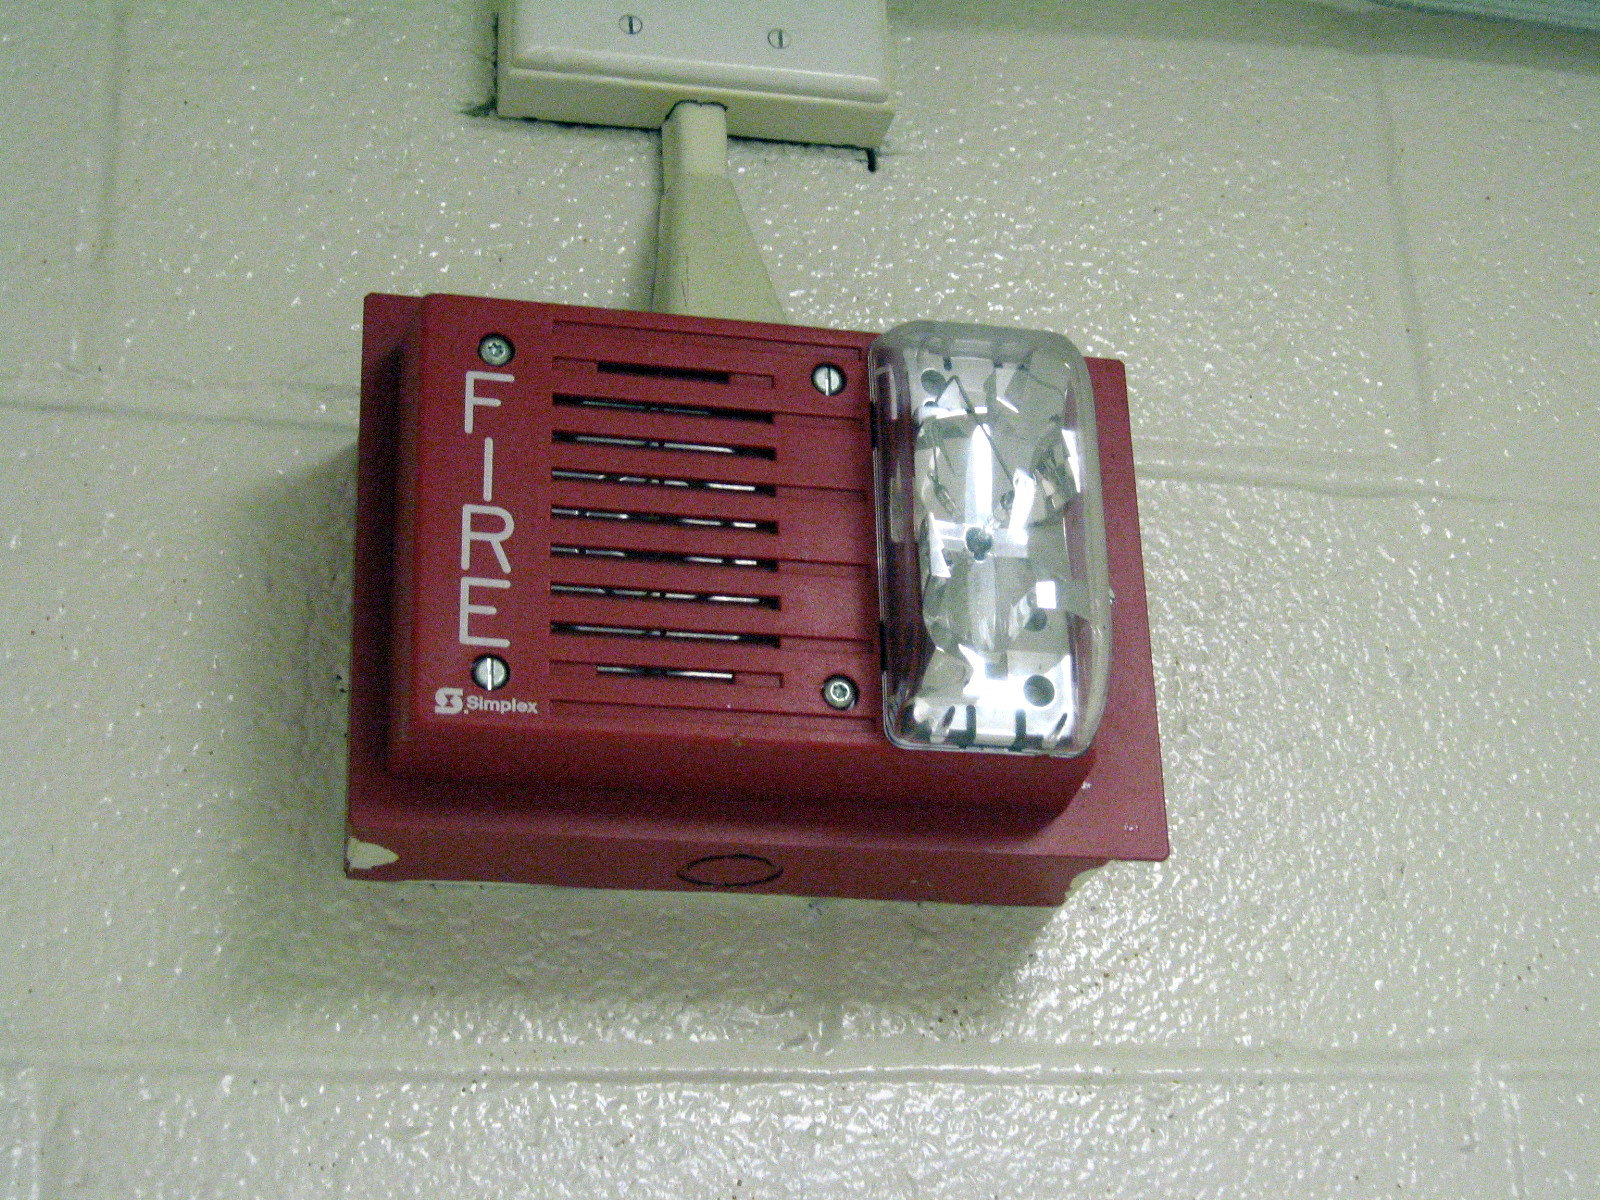 Onsite Paging likewise Adt 5050 001 also Simplex 2901 9838 also Wheelock As24110w together with Watch. on fire alarm strobe